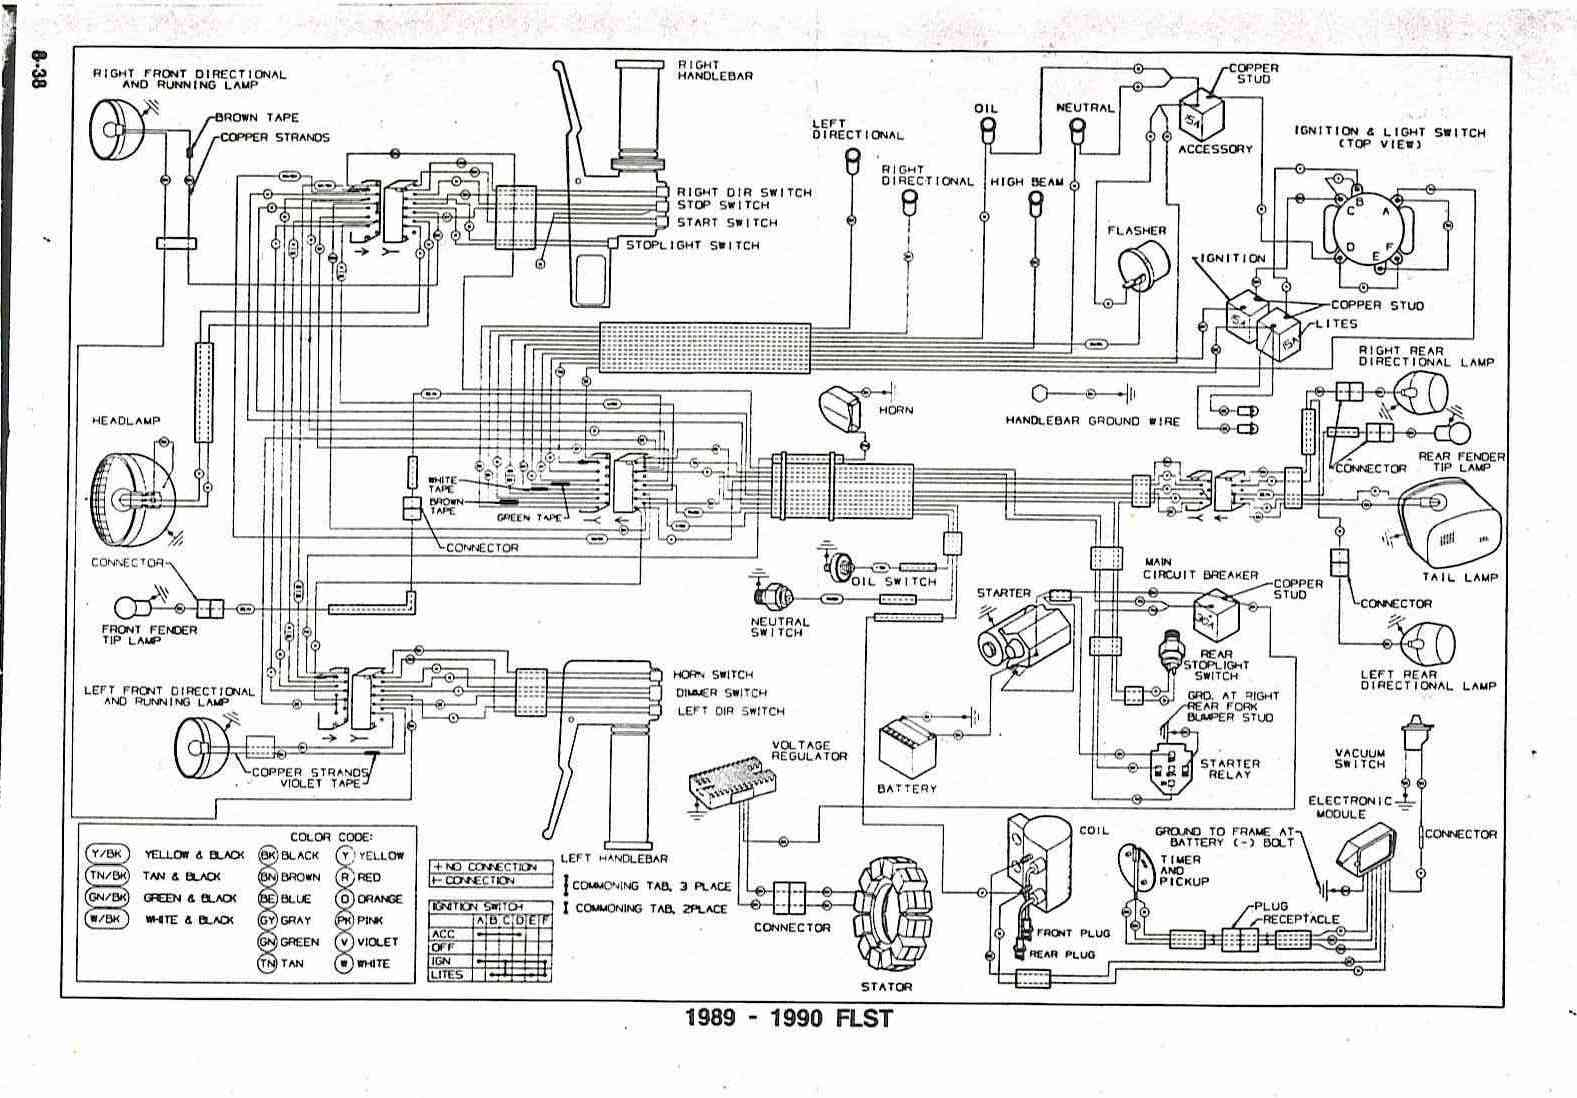 951HD_wireing_schematic2 harley davidson wiring diagram basic wiring diagram harley Harley-Davidson 97 Sportster Wiring Diagram at readyjetset.co